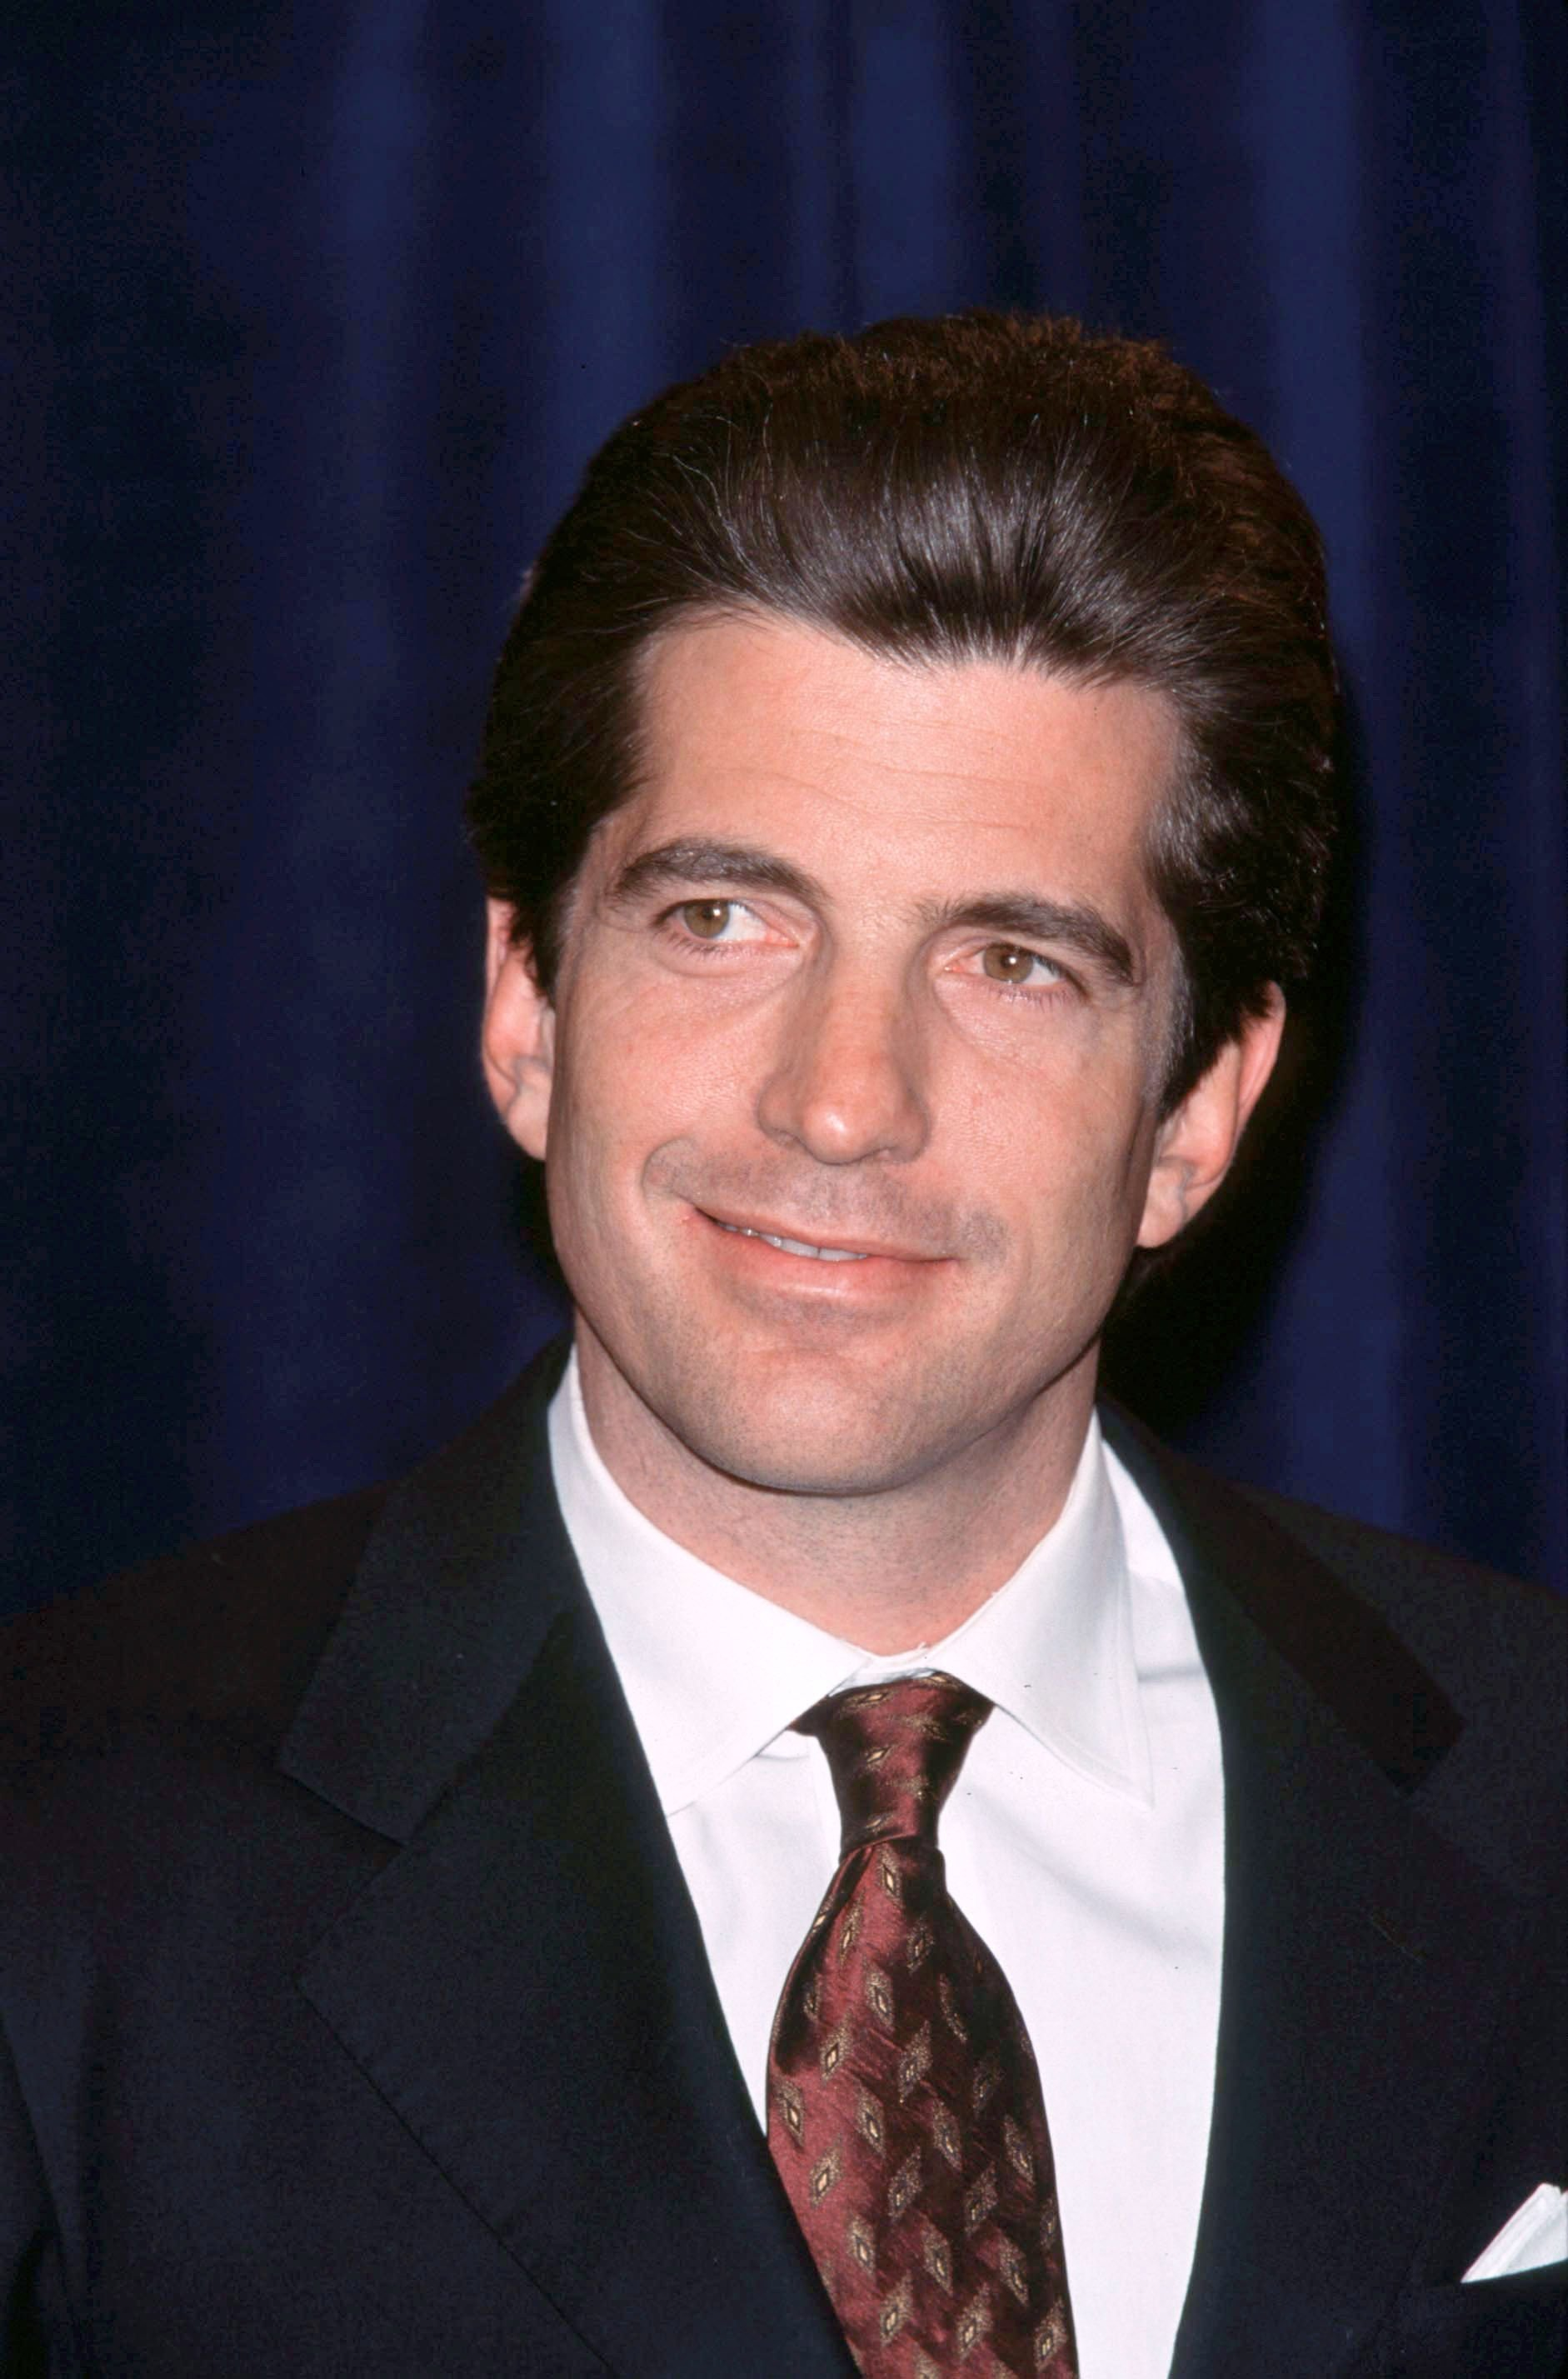 John Kennedy Jr. announces endowed Jackie Robinson scholarship, at the Jackie Robinson foundation dinner on October 05, 1998 Photo: Getty Images